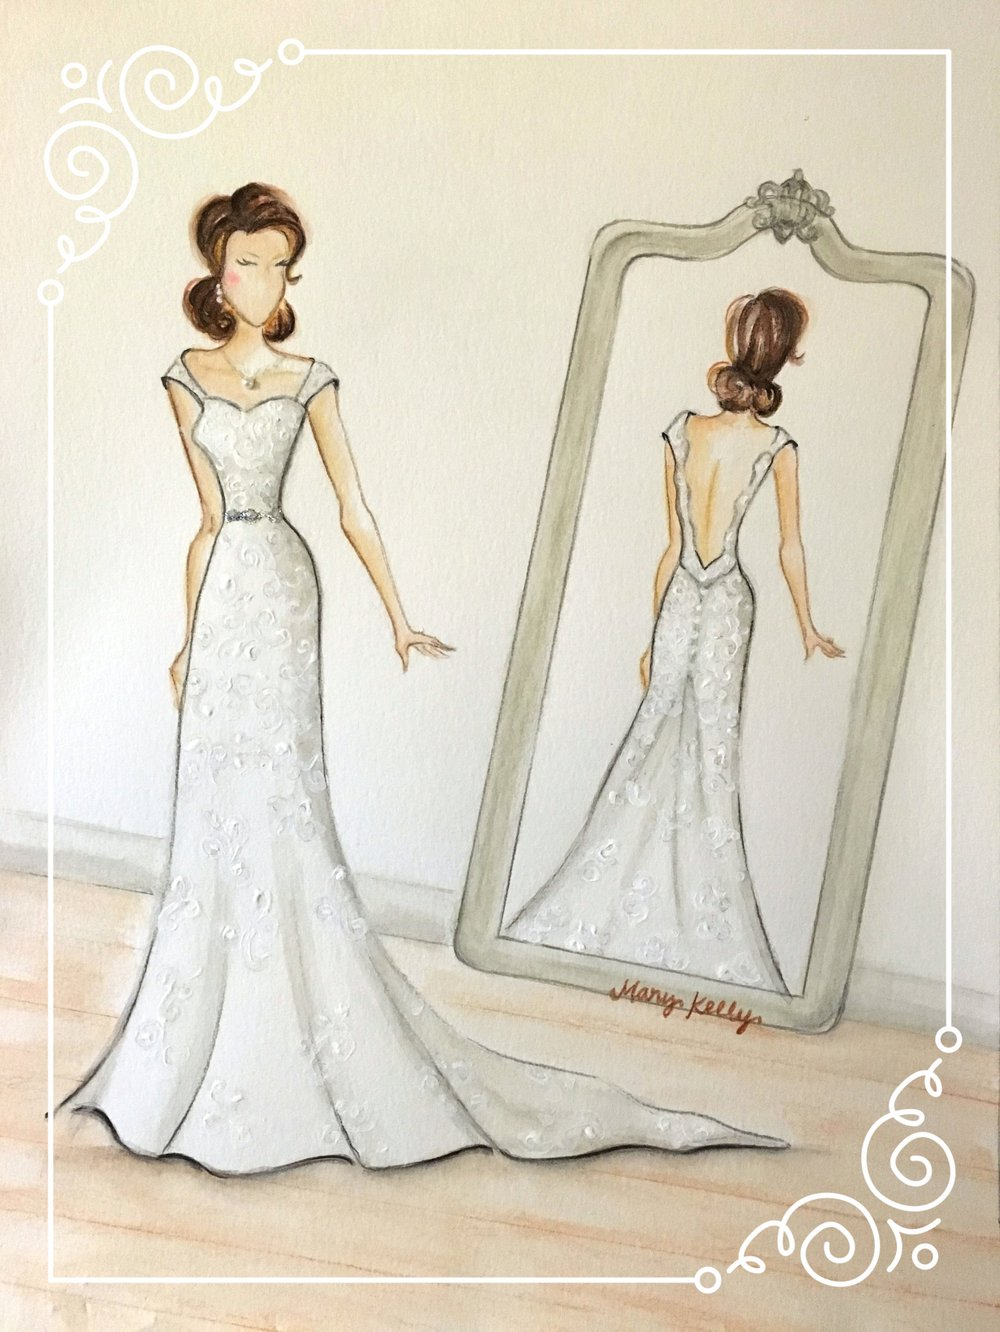 NEW! ashley's wedding gown, mary kelly designs © 2018